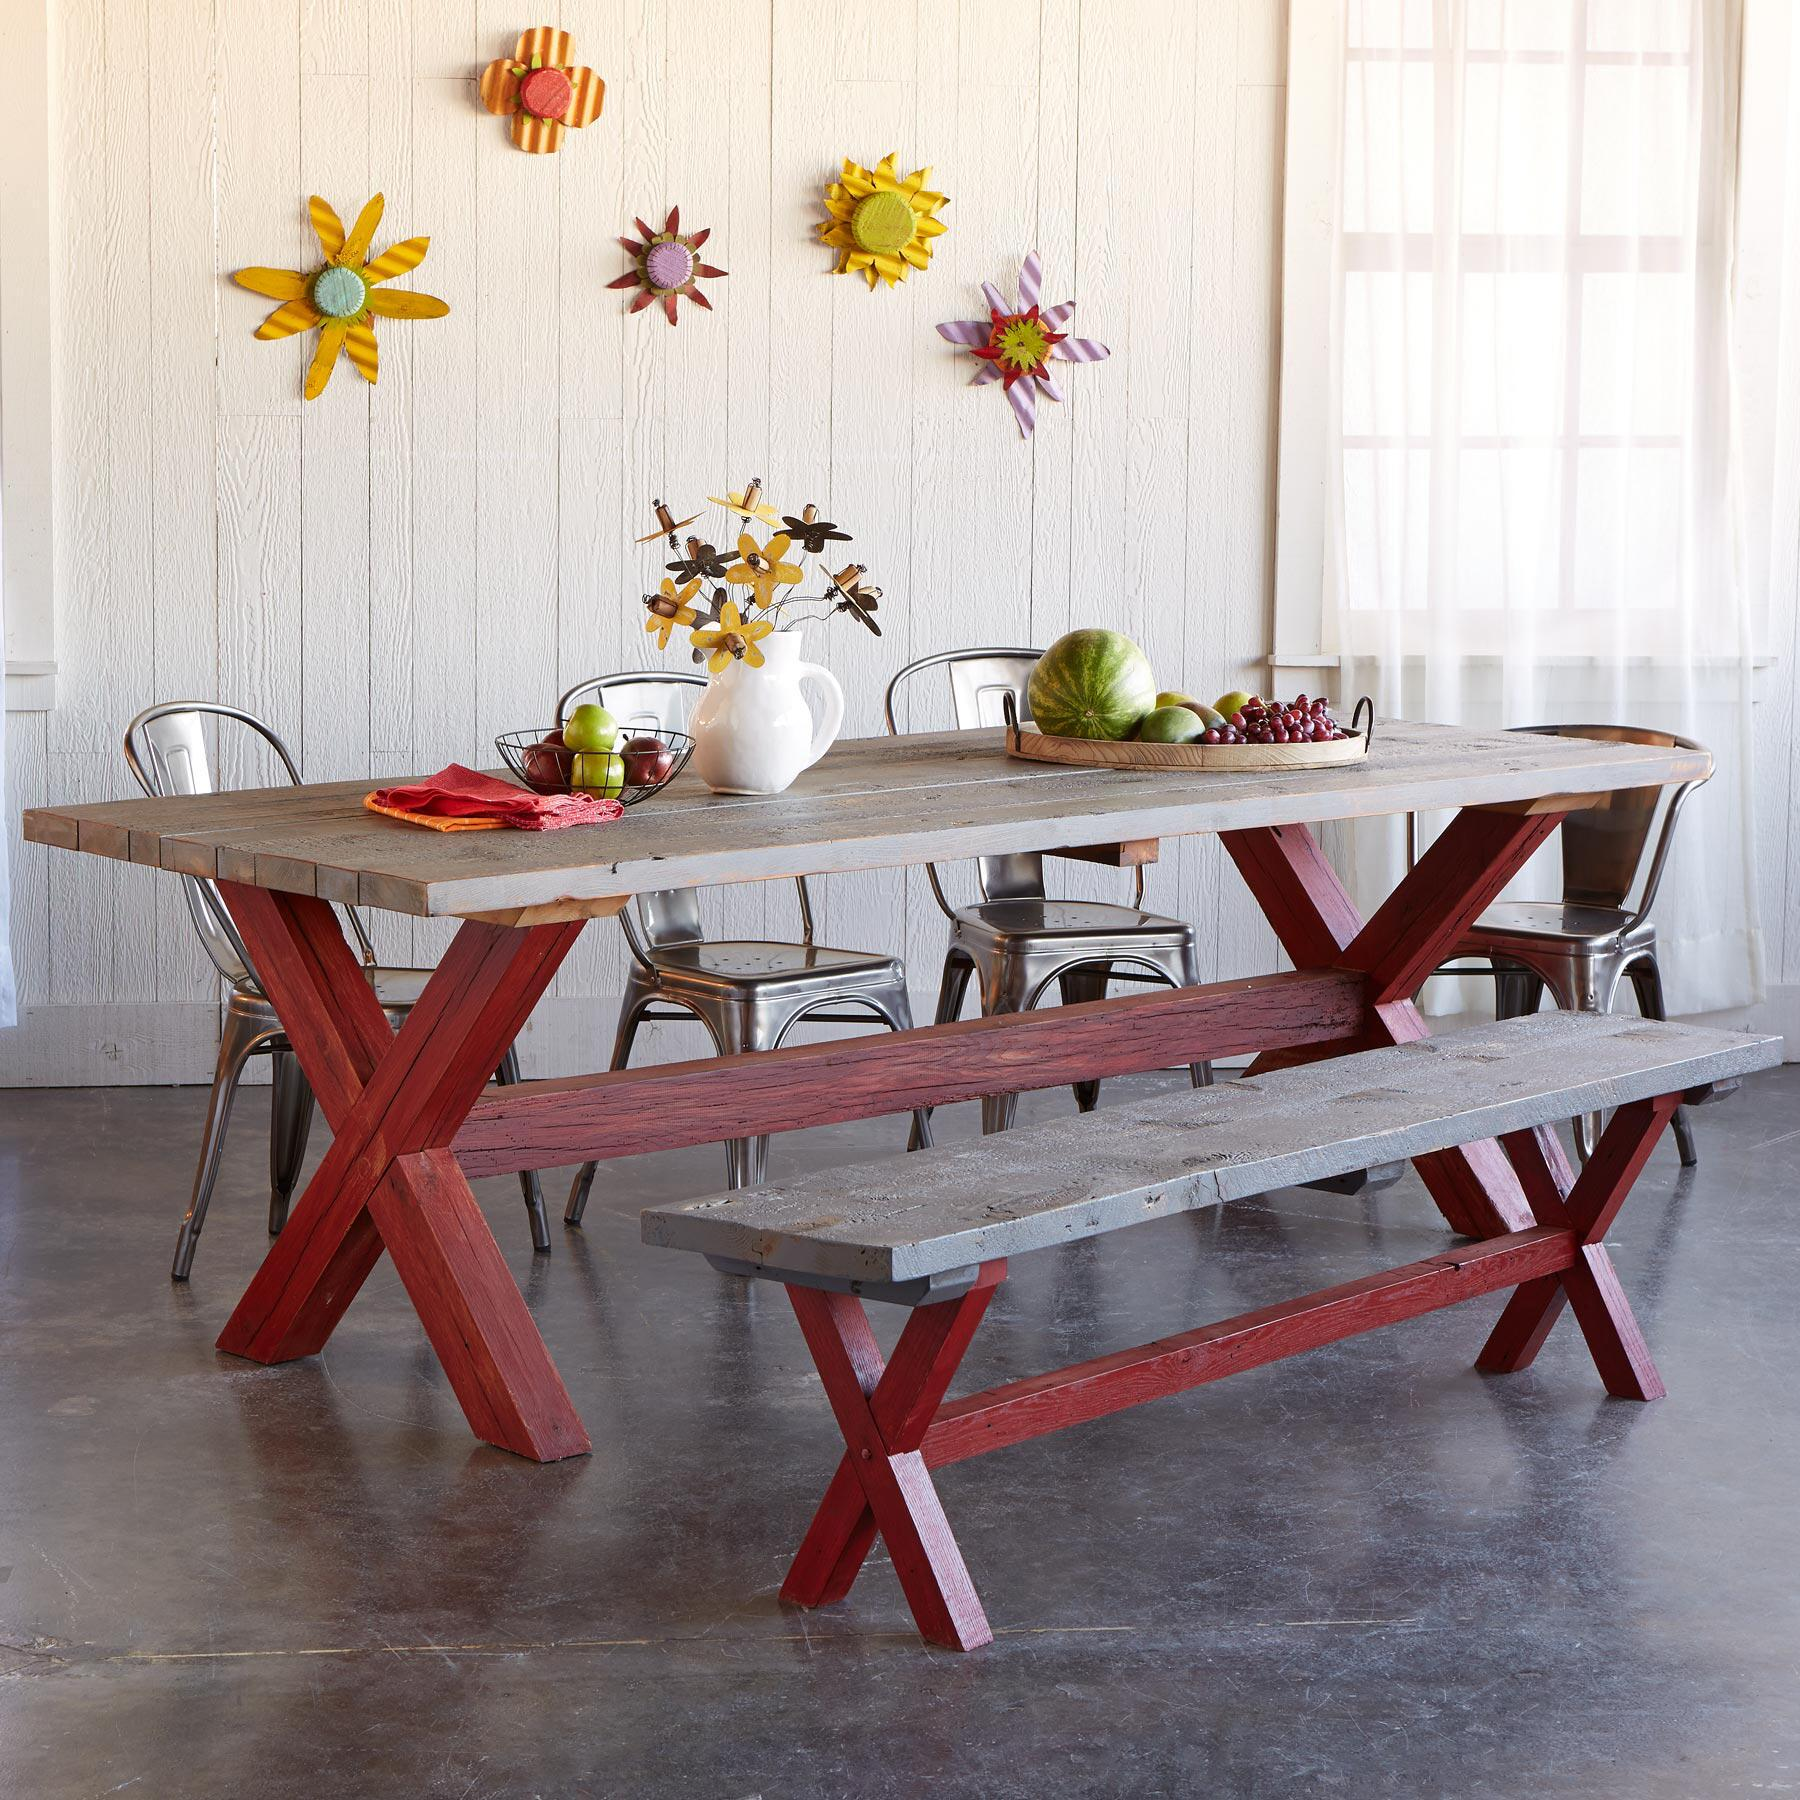 GUERNSEY FARMS OUTDOOR DINING TABLE: View 4